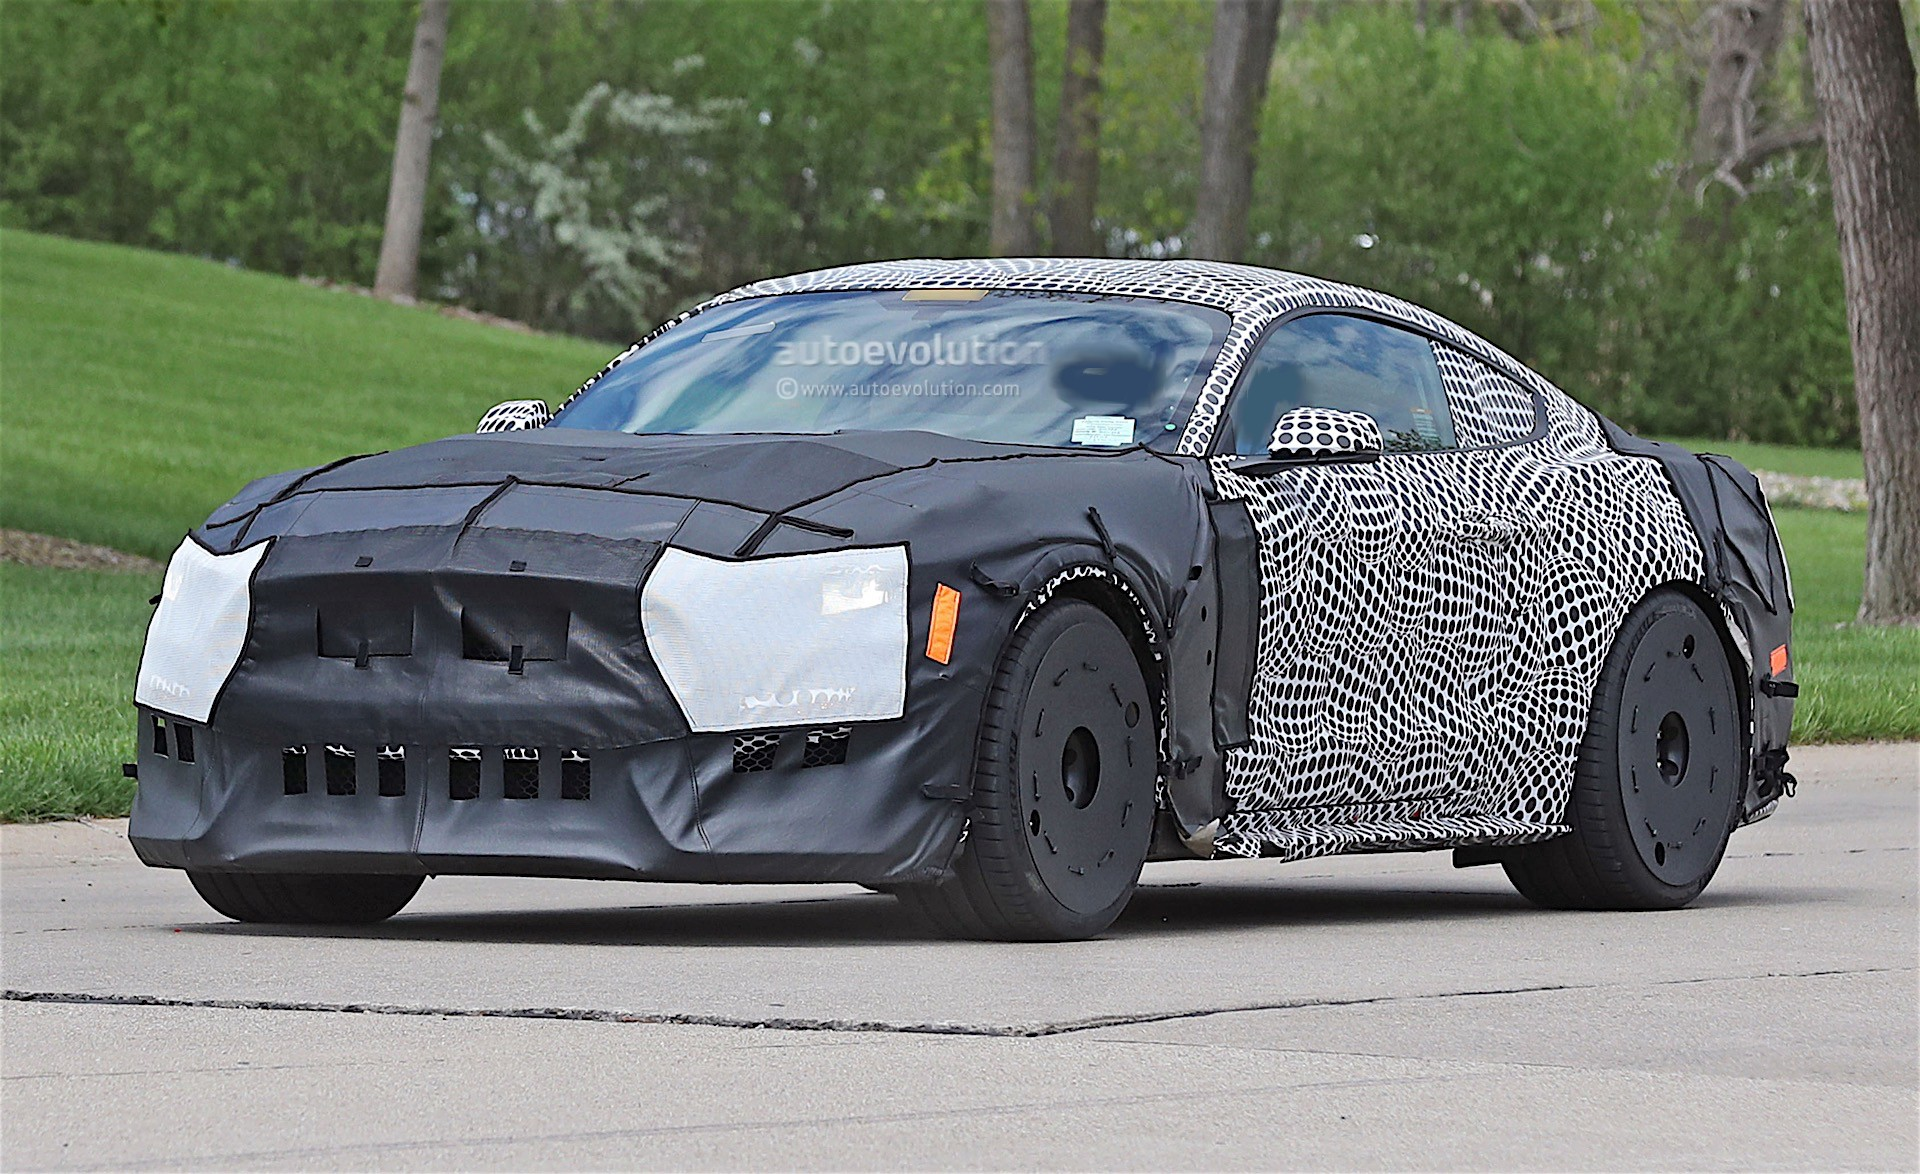 Strange Mustang Prototype Spied Near Dearborn Could Be